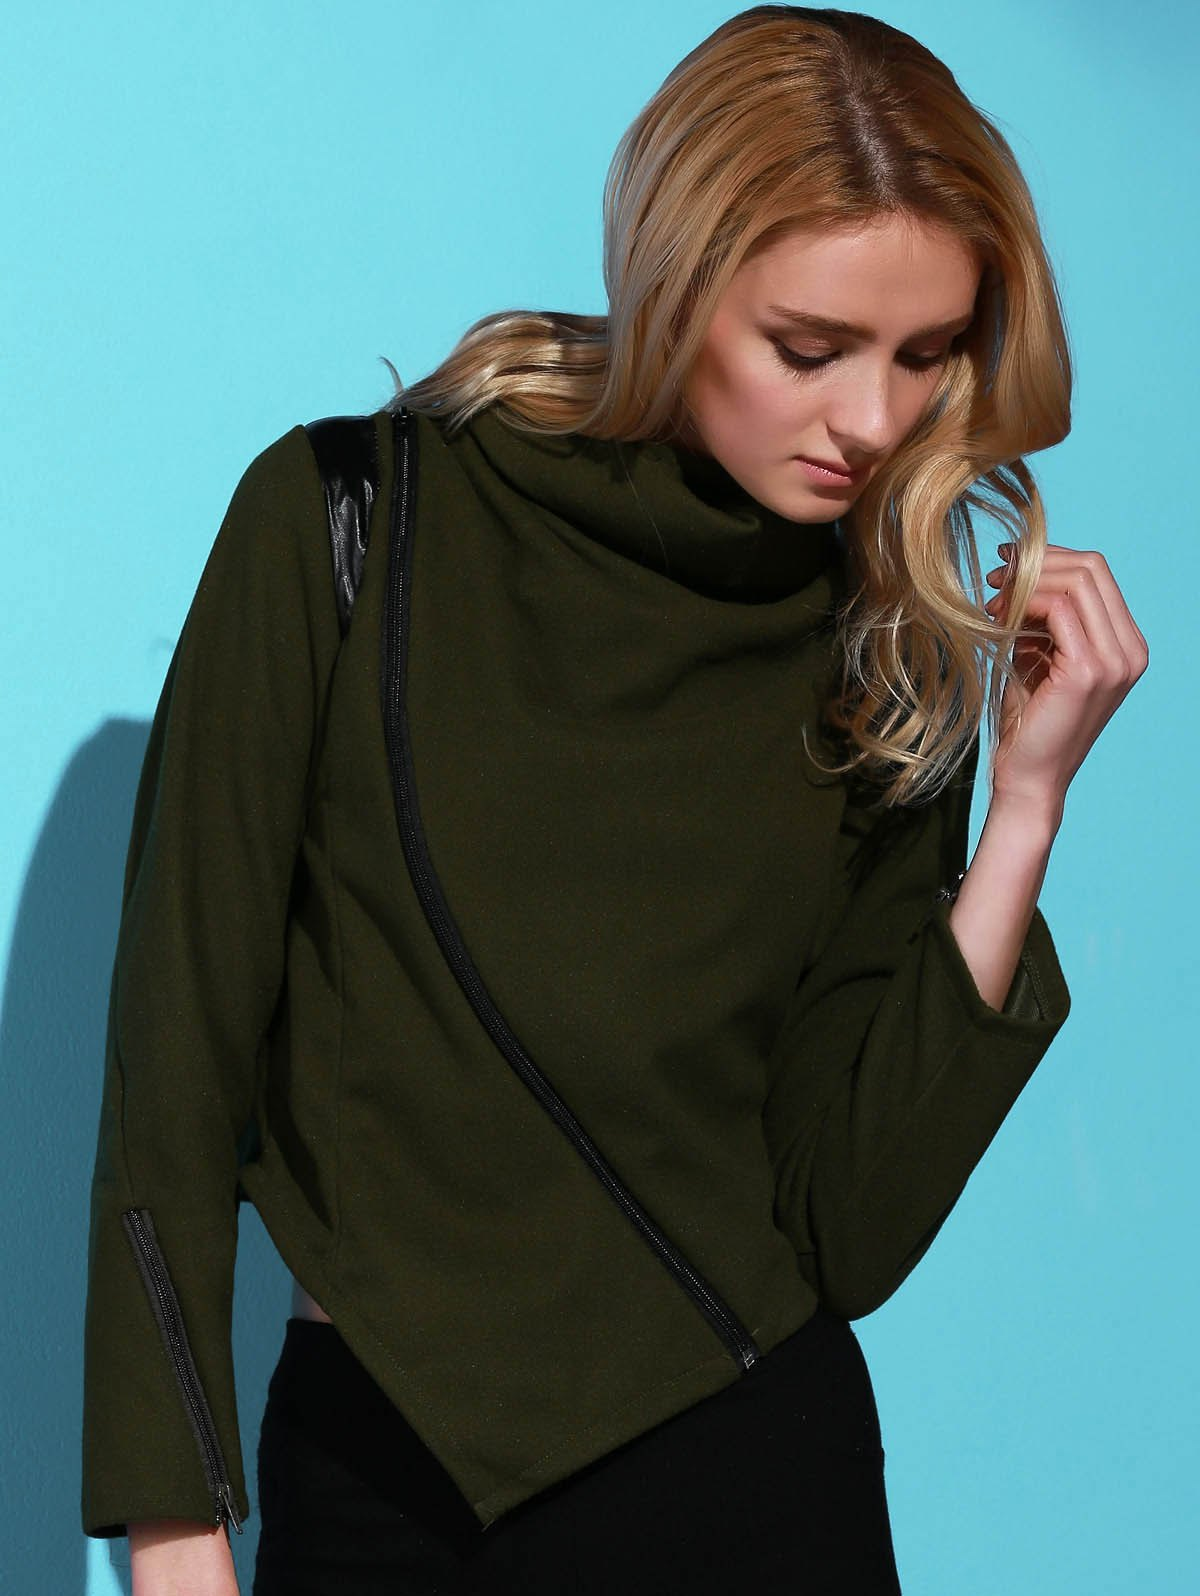 Stylish Long Sleeve Cowl Neck Zippered Women's Leather Trim Jacket - ARMY GREEN M